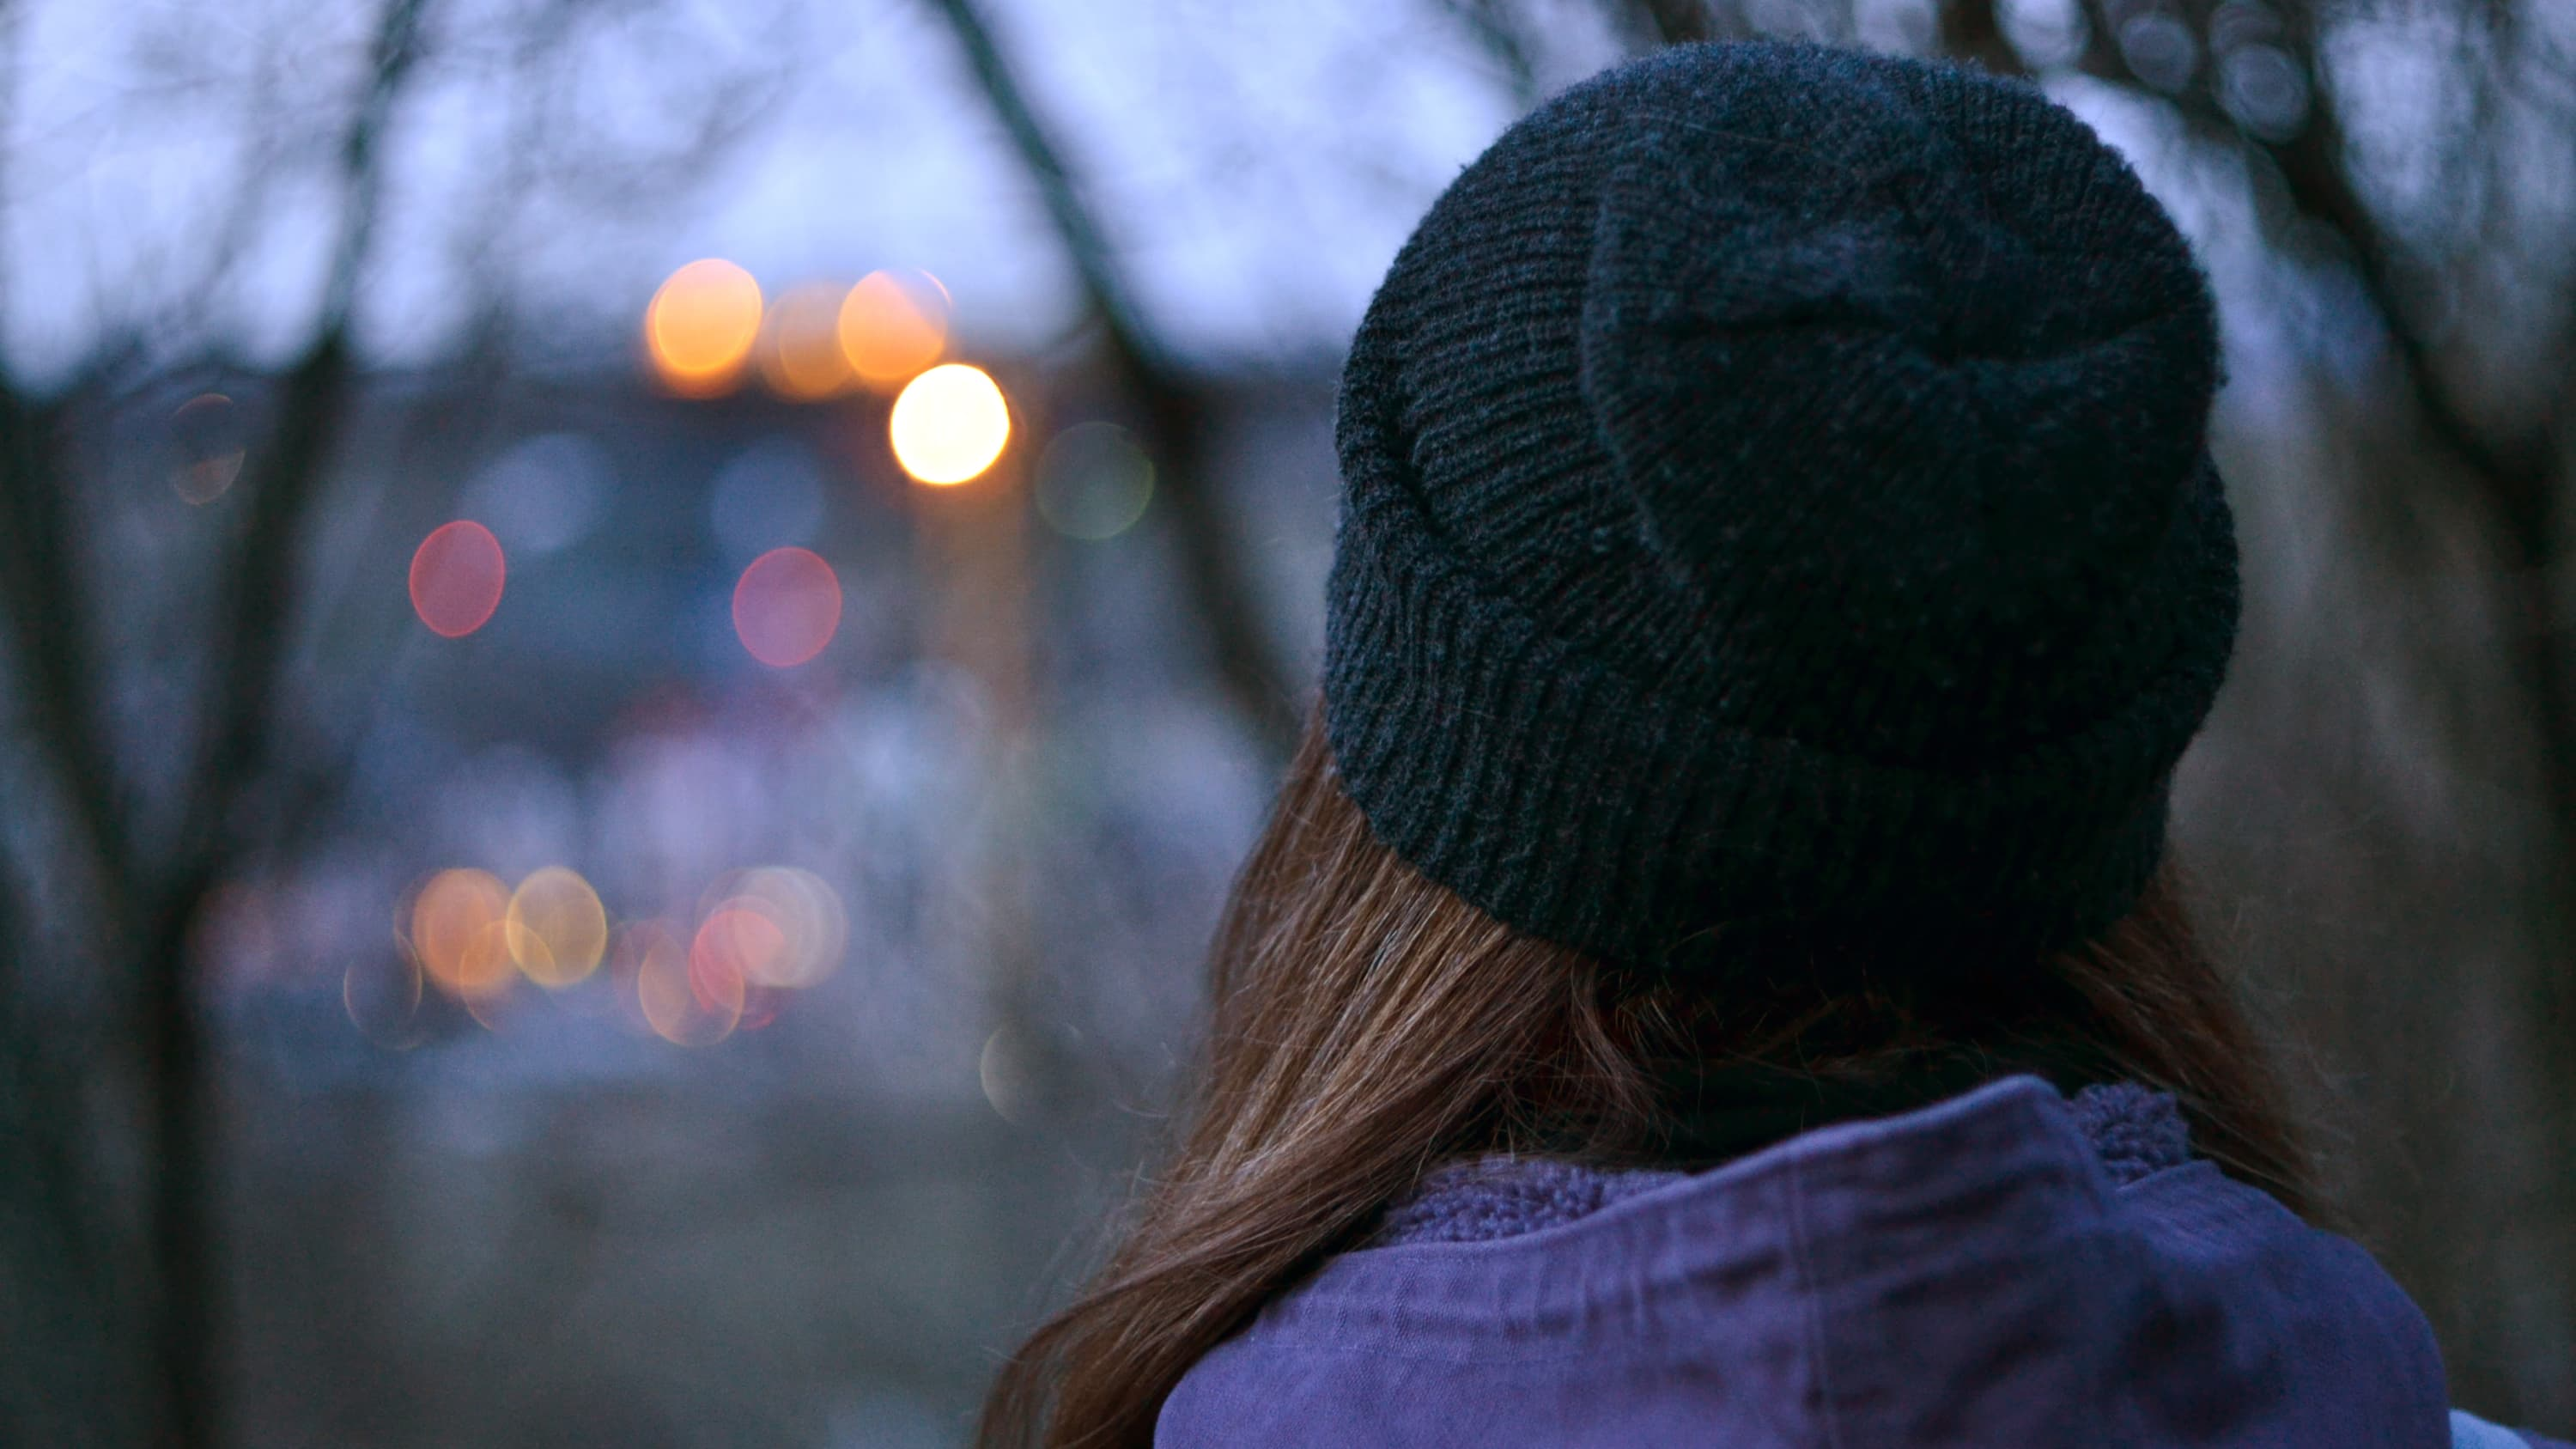 A woman, who possibly has bipolar disorder, stands with her back to the camera at night